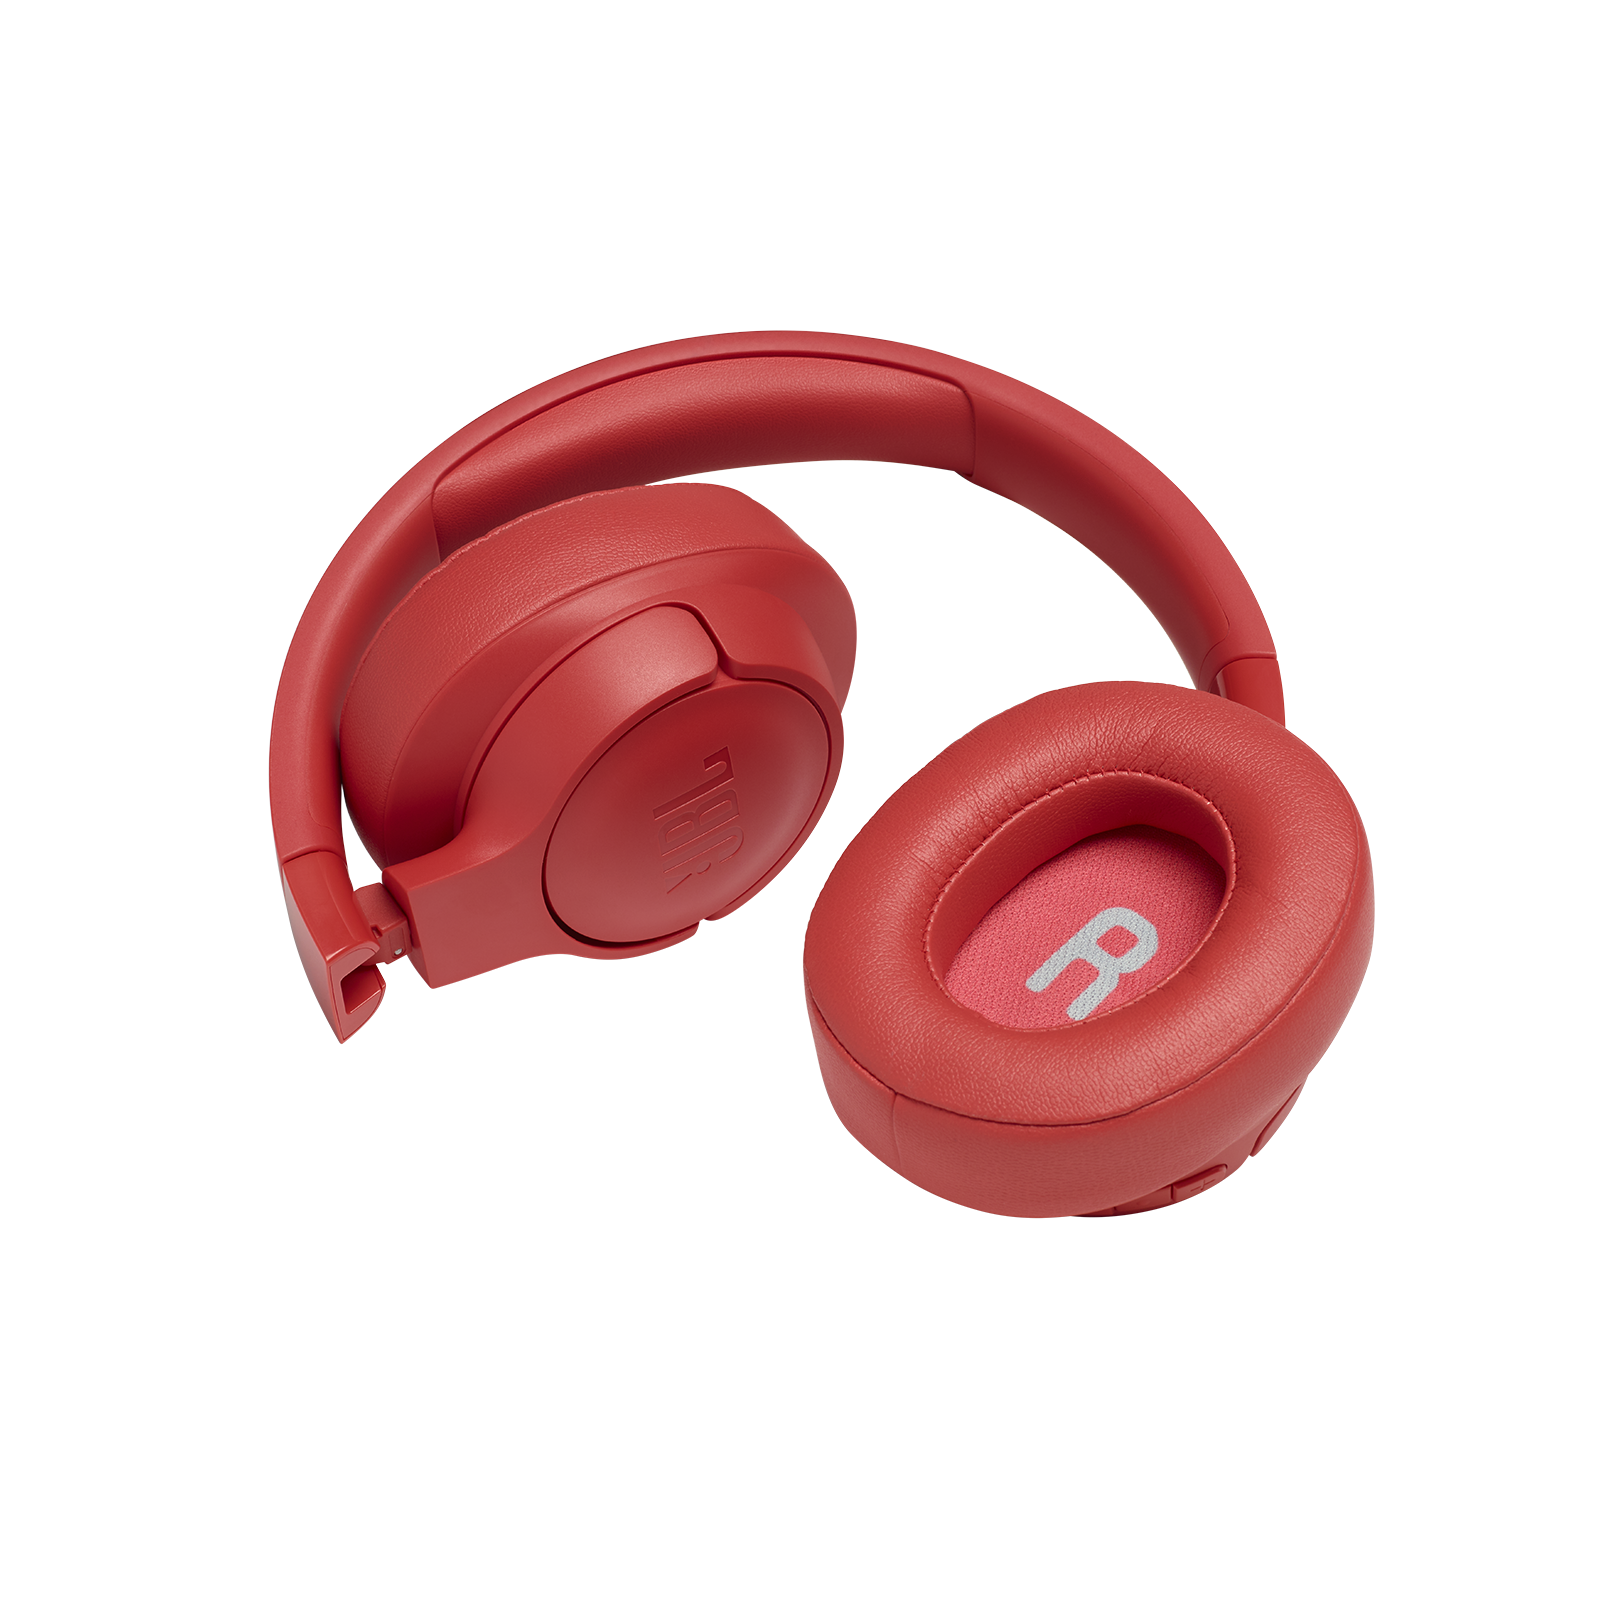 JBL TUNE 700BT - Coral Orange - Wireless Over-Ear Headphones - Detailshot 2